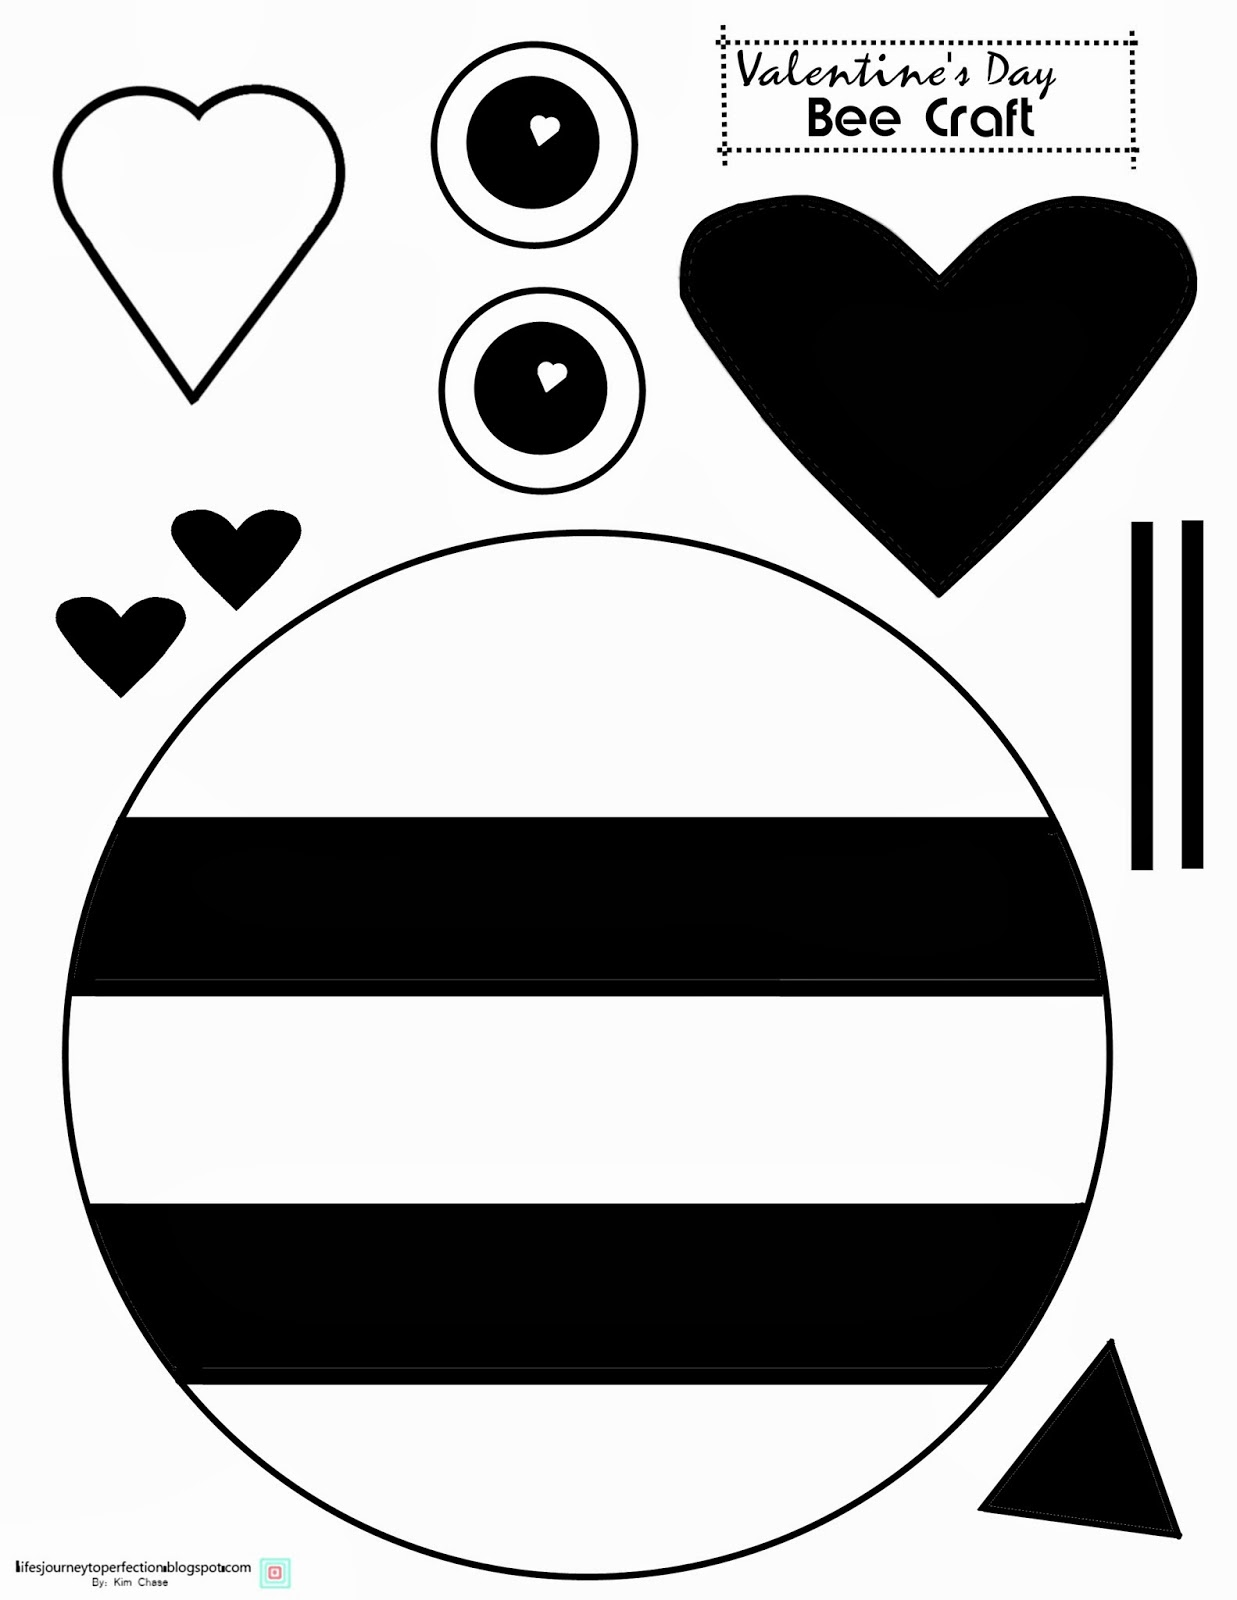 Life39s Journey To Perfection Valentine39s Day Bee Craft